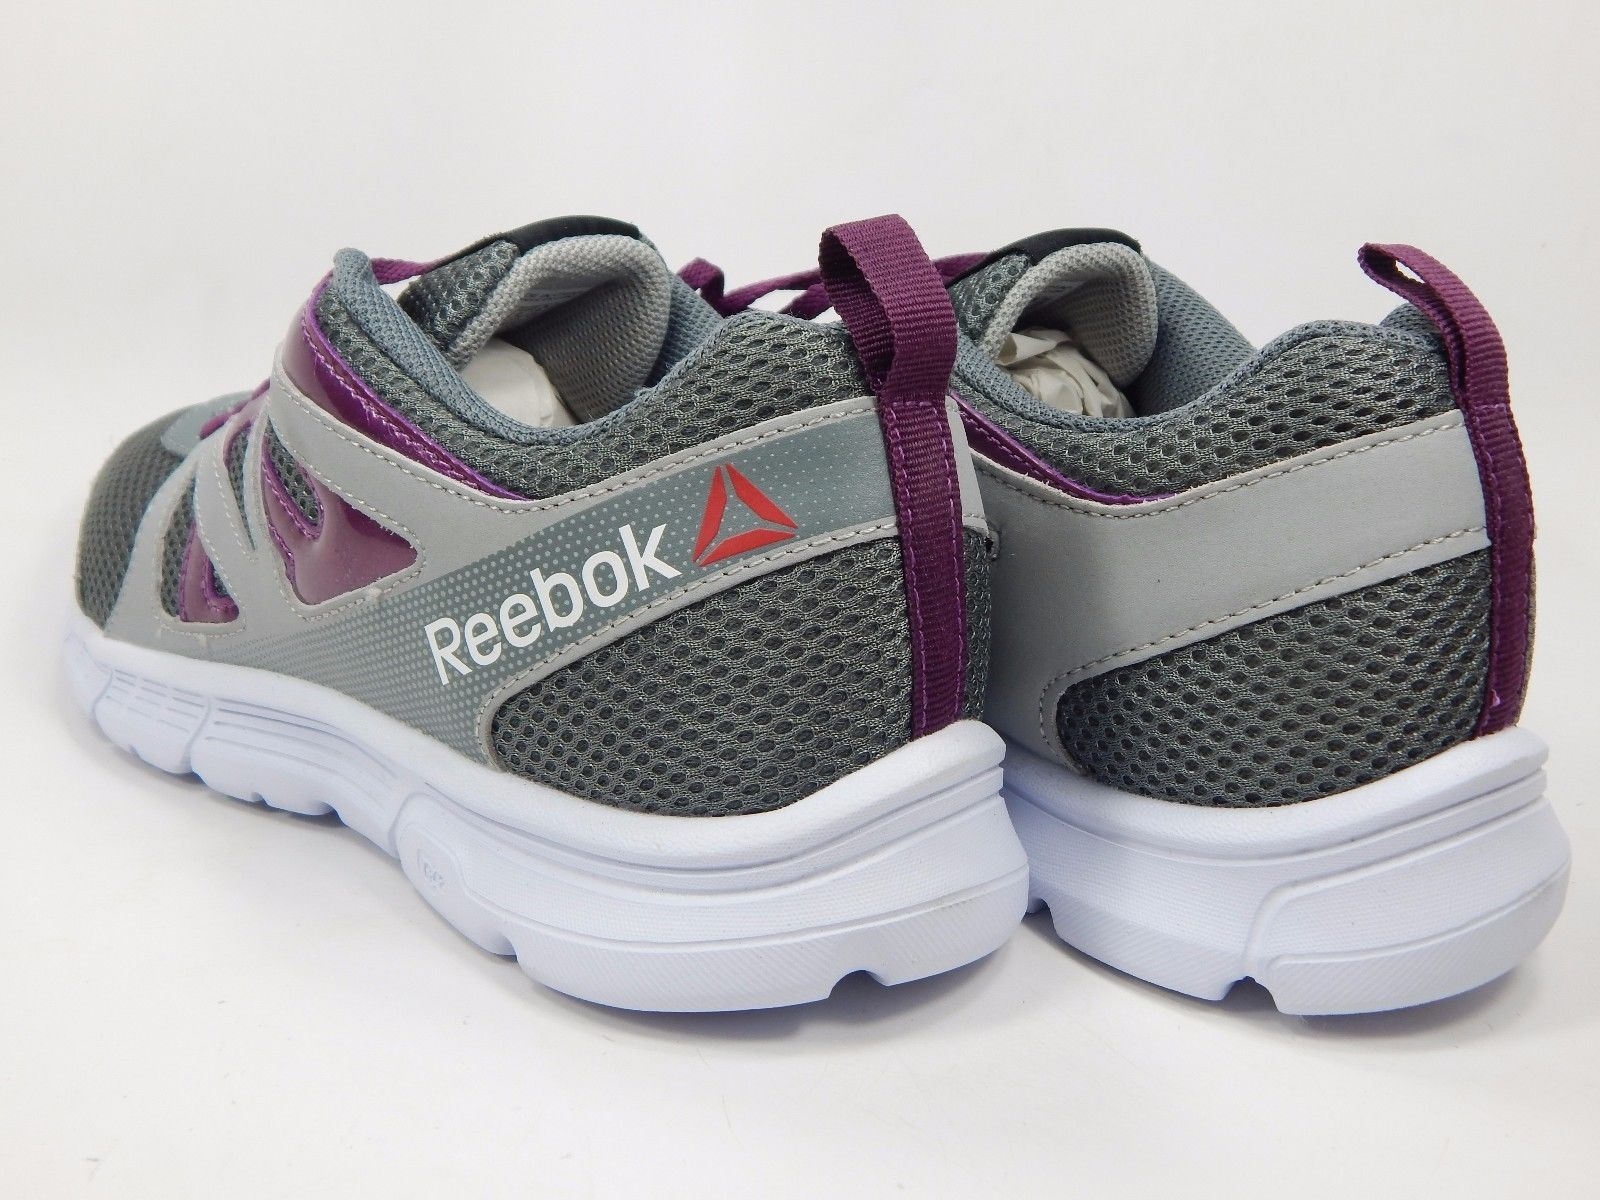 Reebok Run Supreme Women's Running Shoes Size US 10 M (B) EU 41 Gray V72089